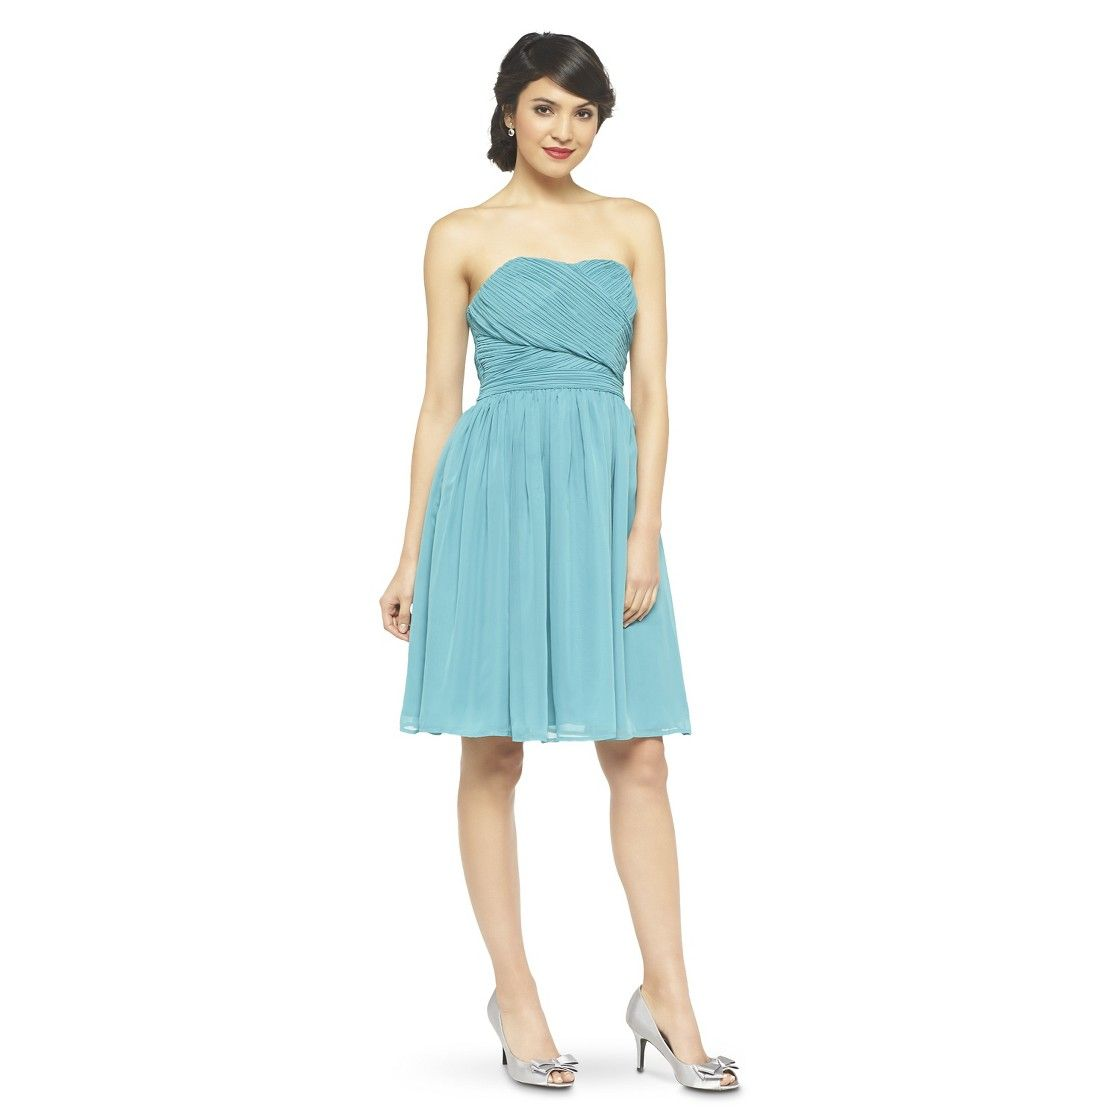 9a80f583ec Women s Chiffon Strapless Bridesmaid Bridesmaid Dress Fashion Colors -  TEVOLIO